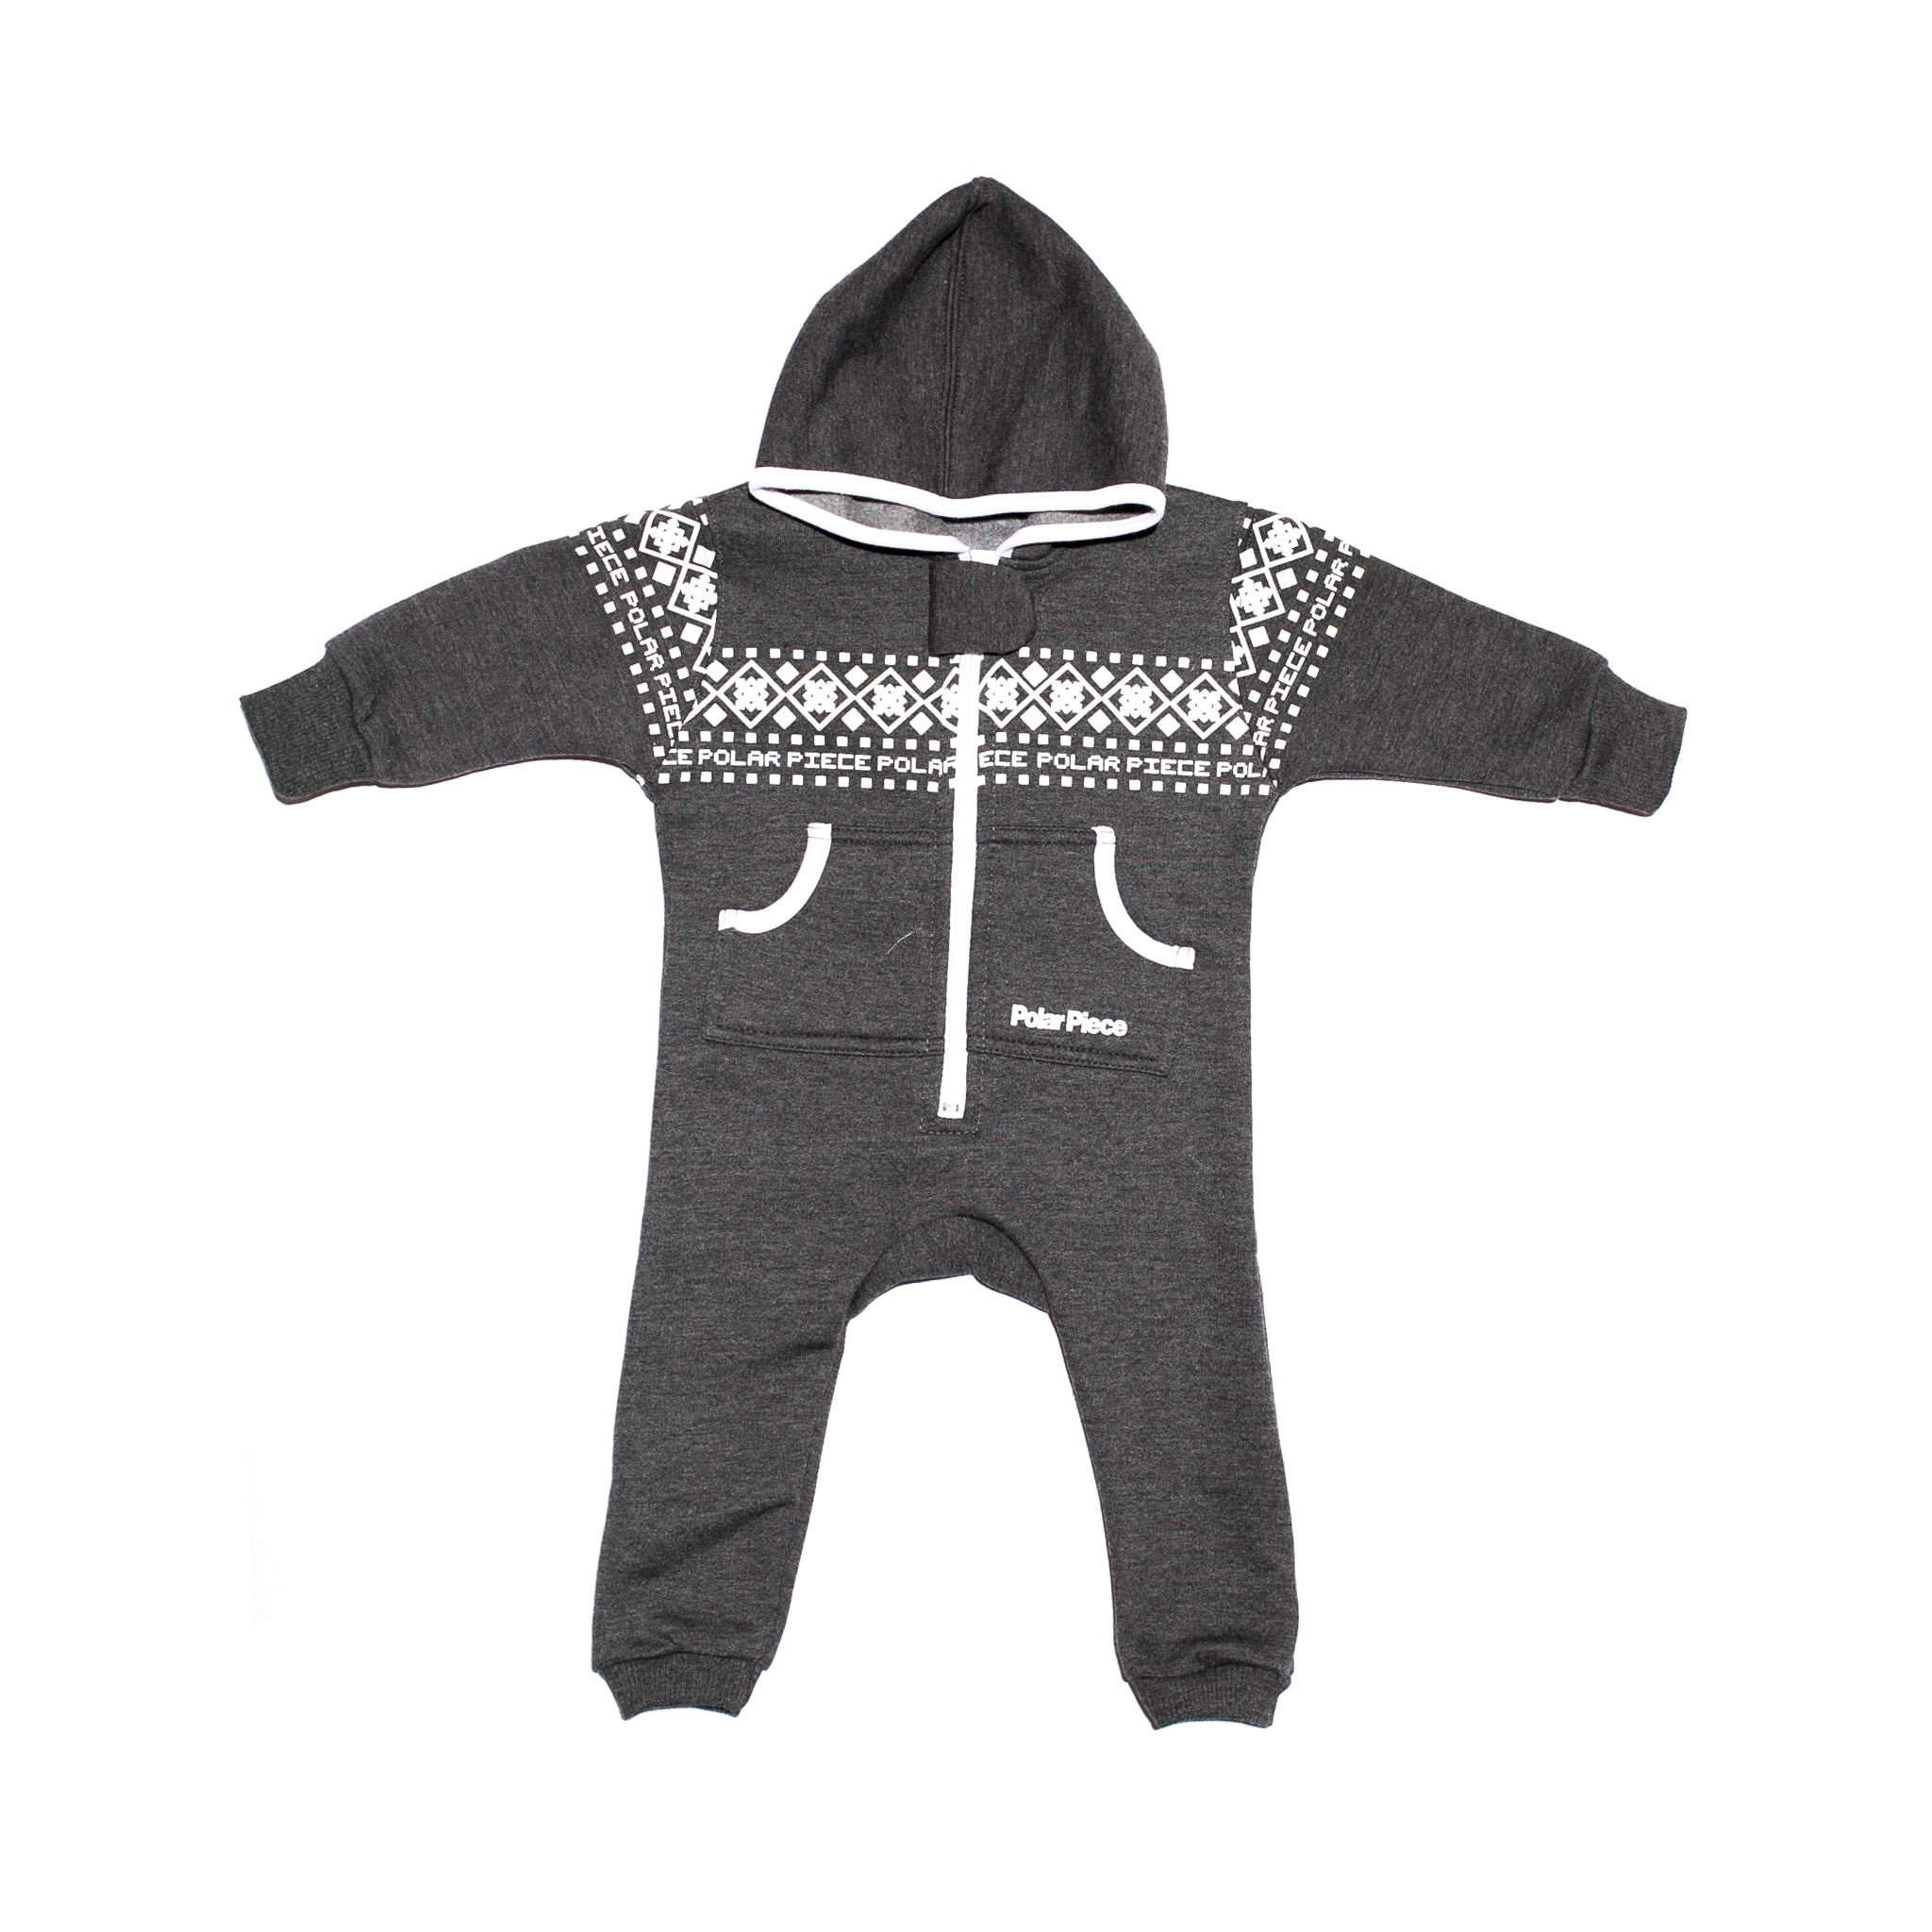 Charcoal with Arctic Print PolarCub - PolarPiece | Simply Canadian